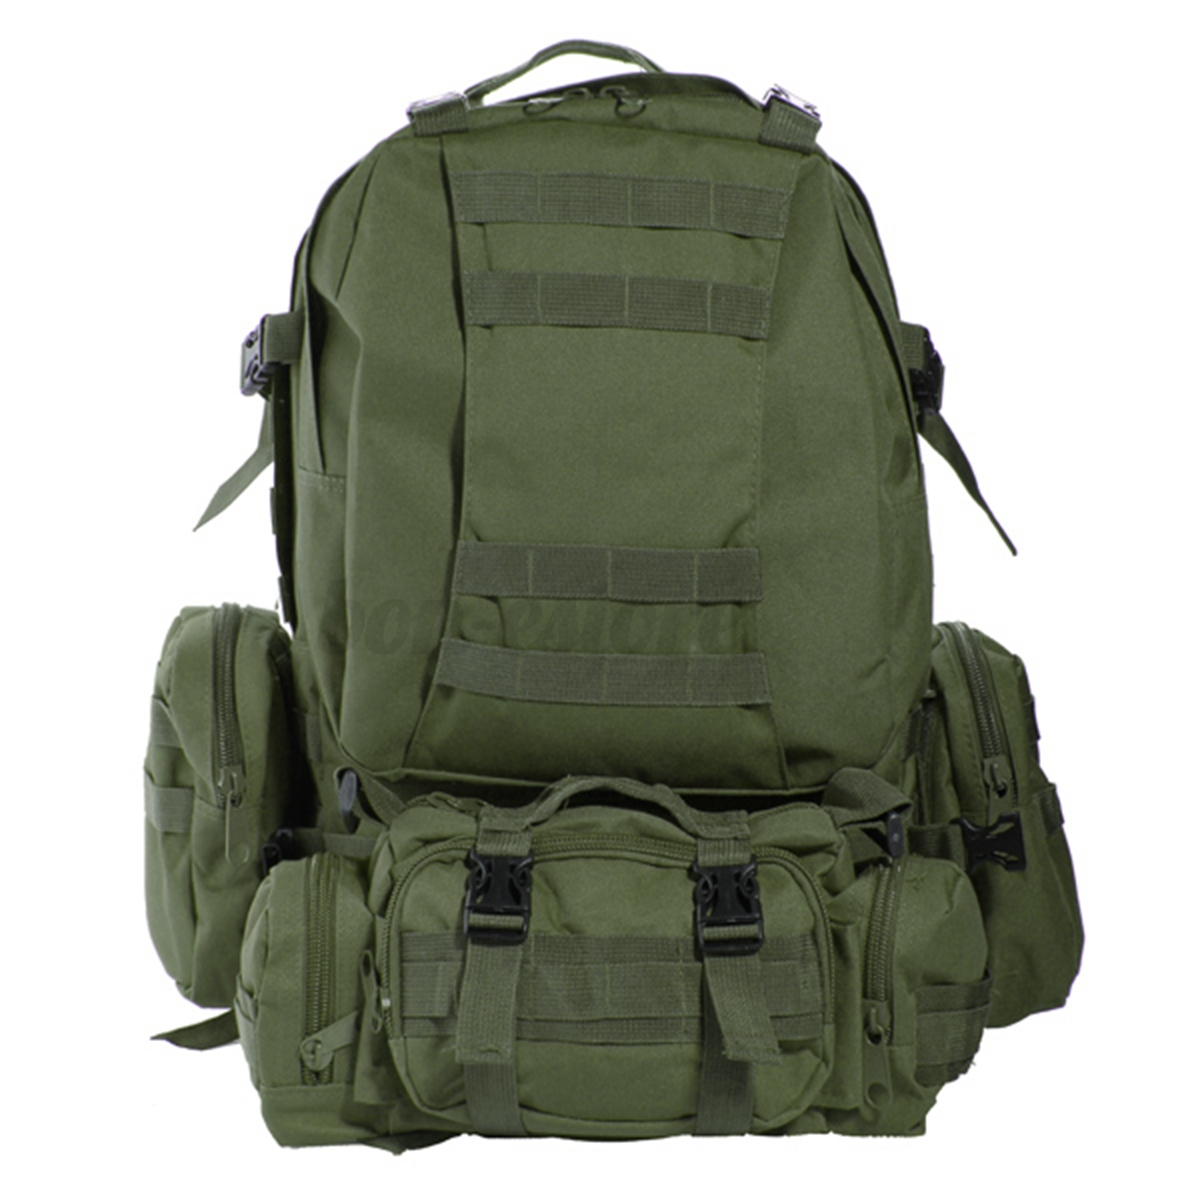 50l molle tactical outdoor military camping rucksack for Outdoor rucksack